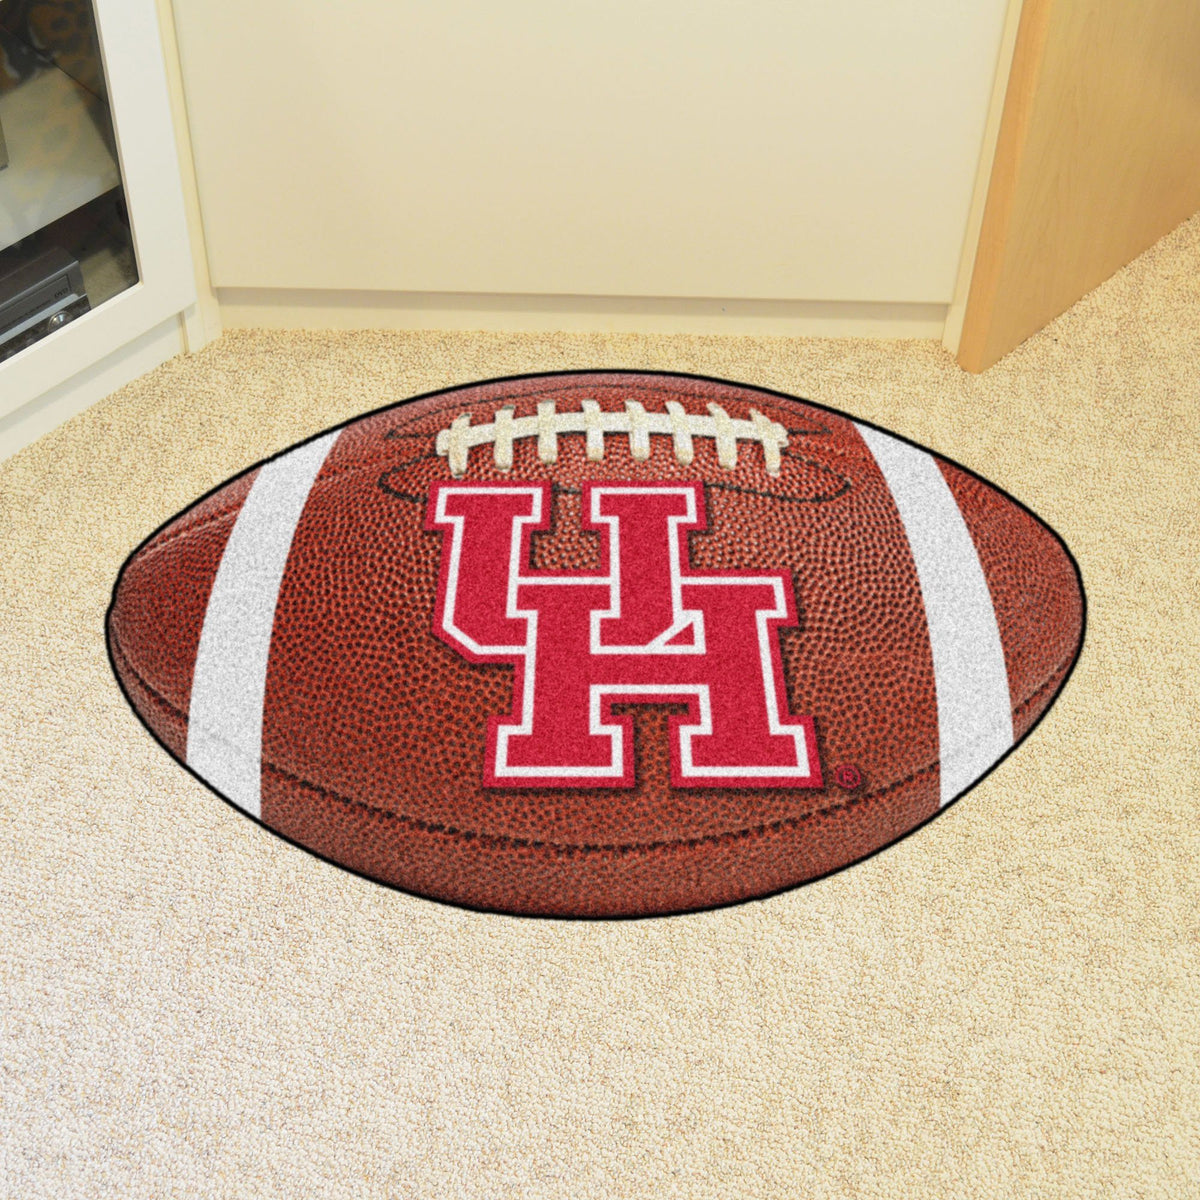 Collegiate - Football Mat: A - K Collegiate Mats, Rectangular Mats, Football Mat, Collegiate, Home Fan Mats Houston